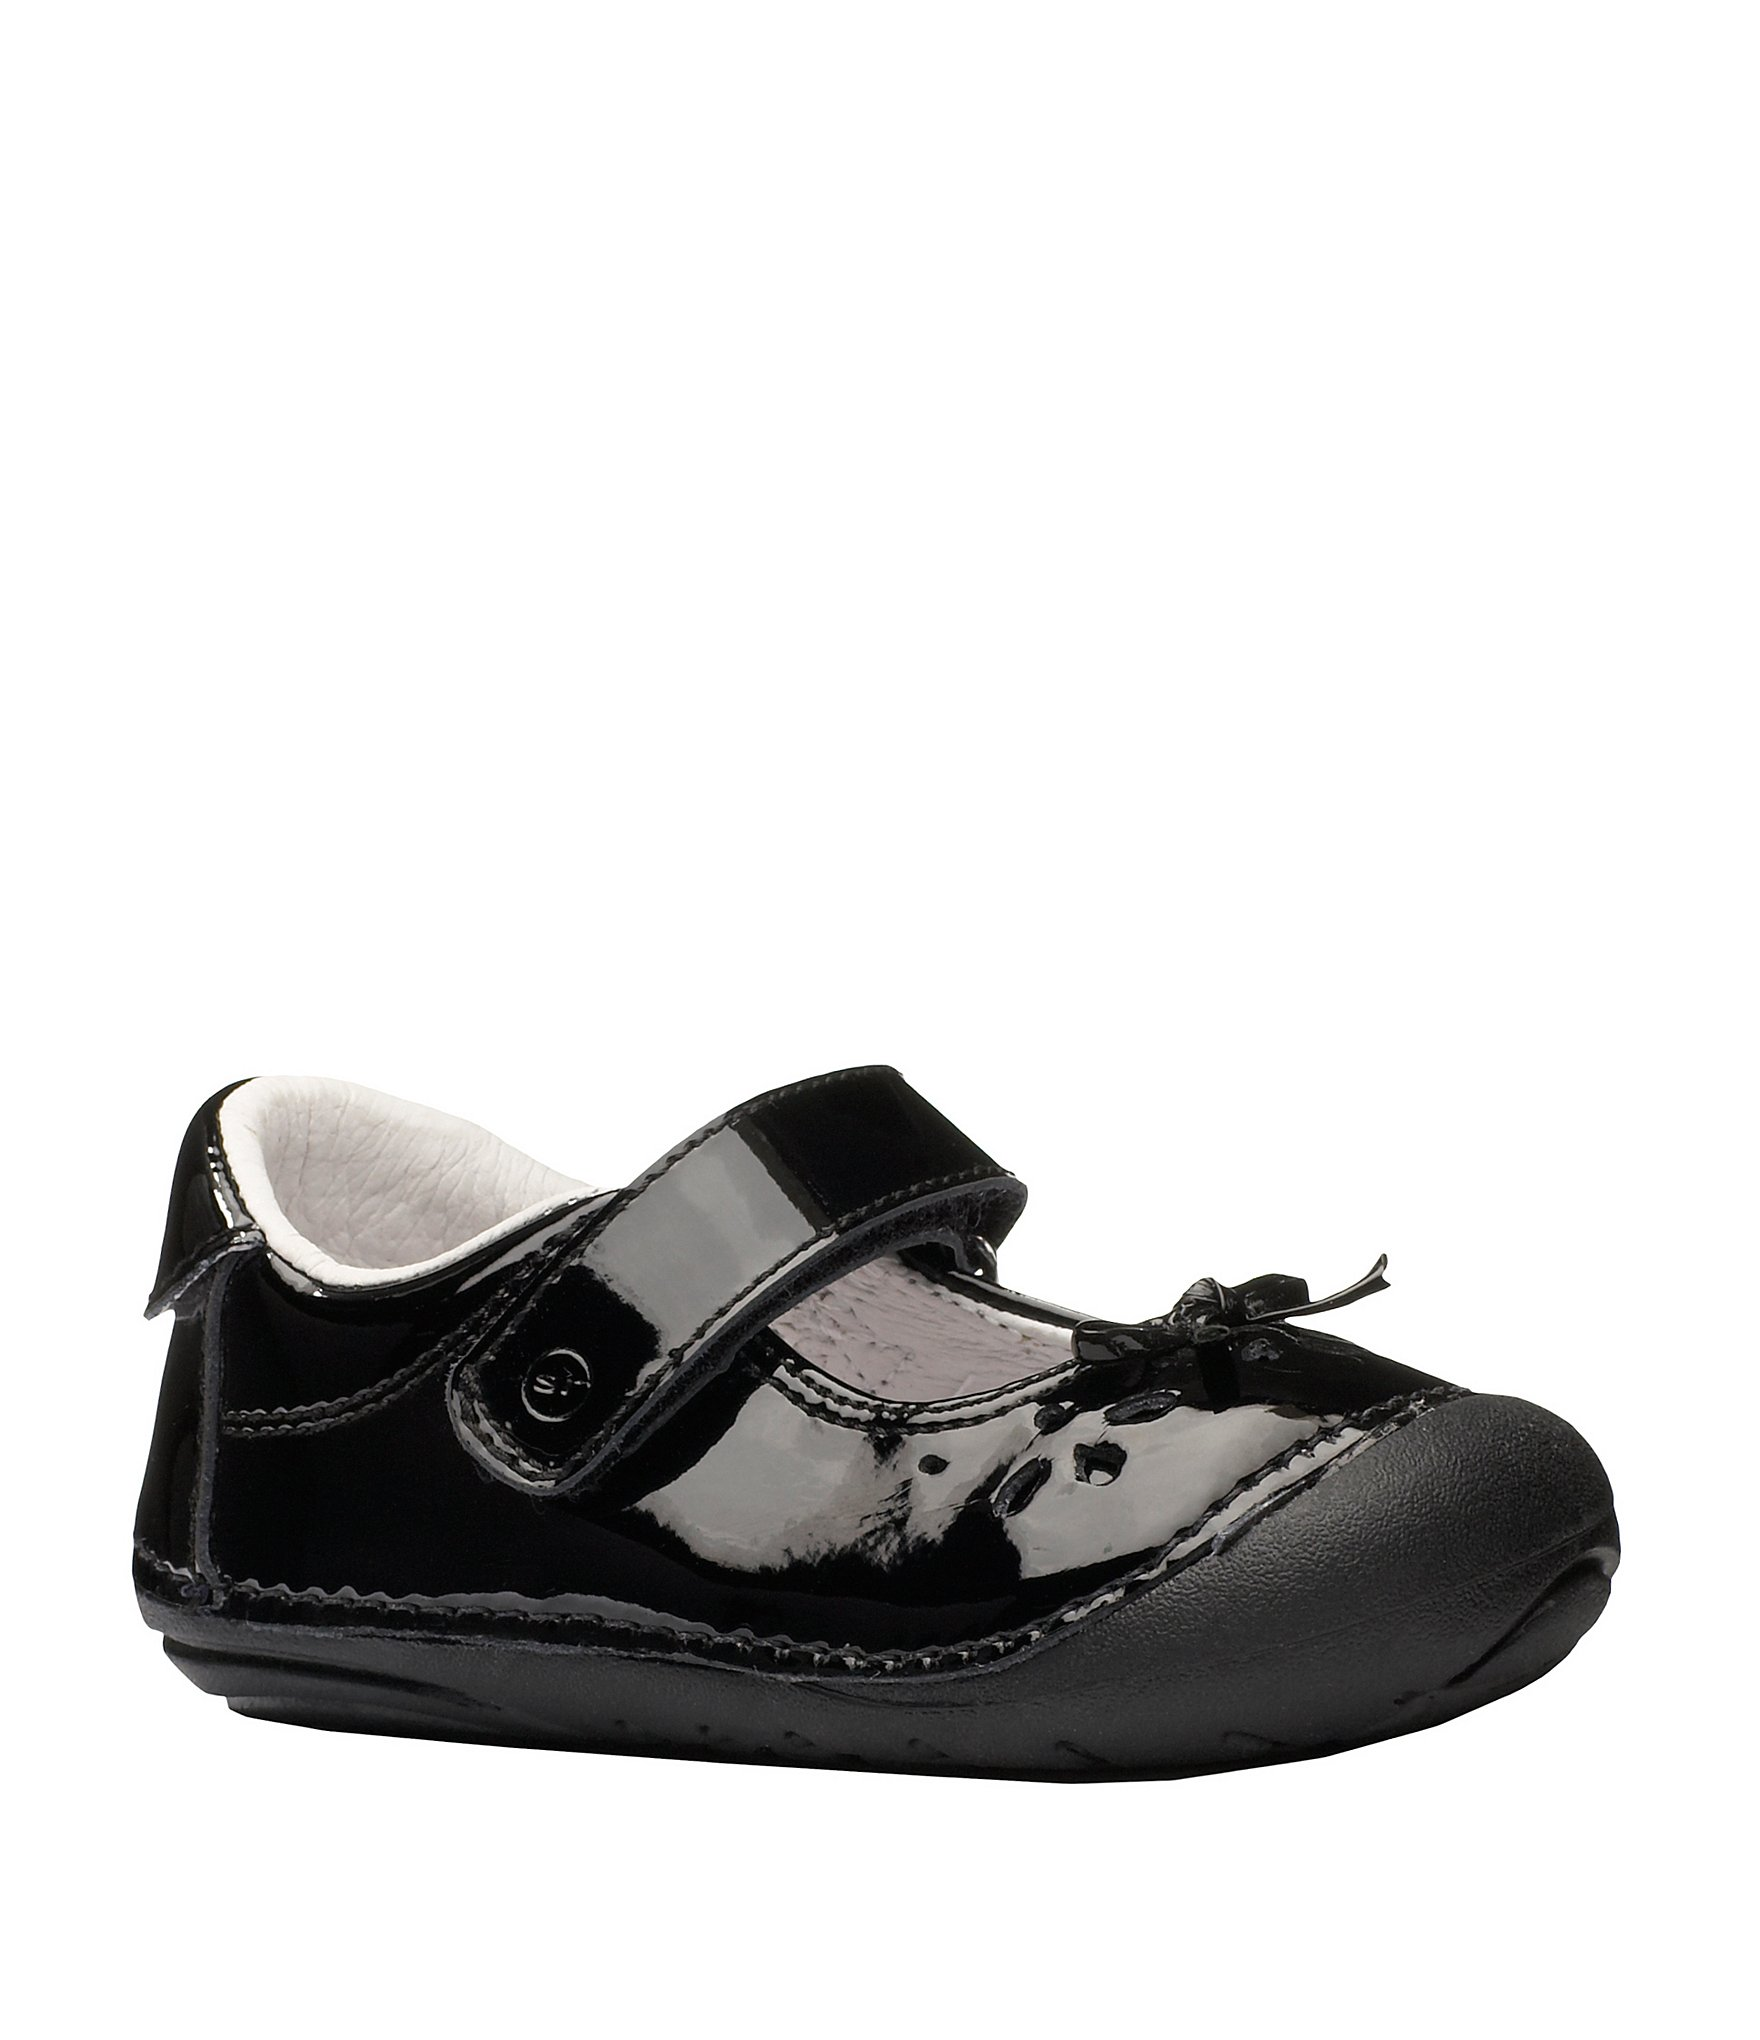 Shoe Dept Infant Shoes Style Guru Fashion Glitz